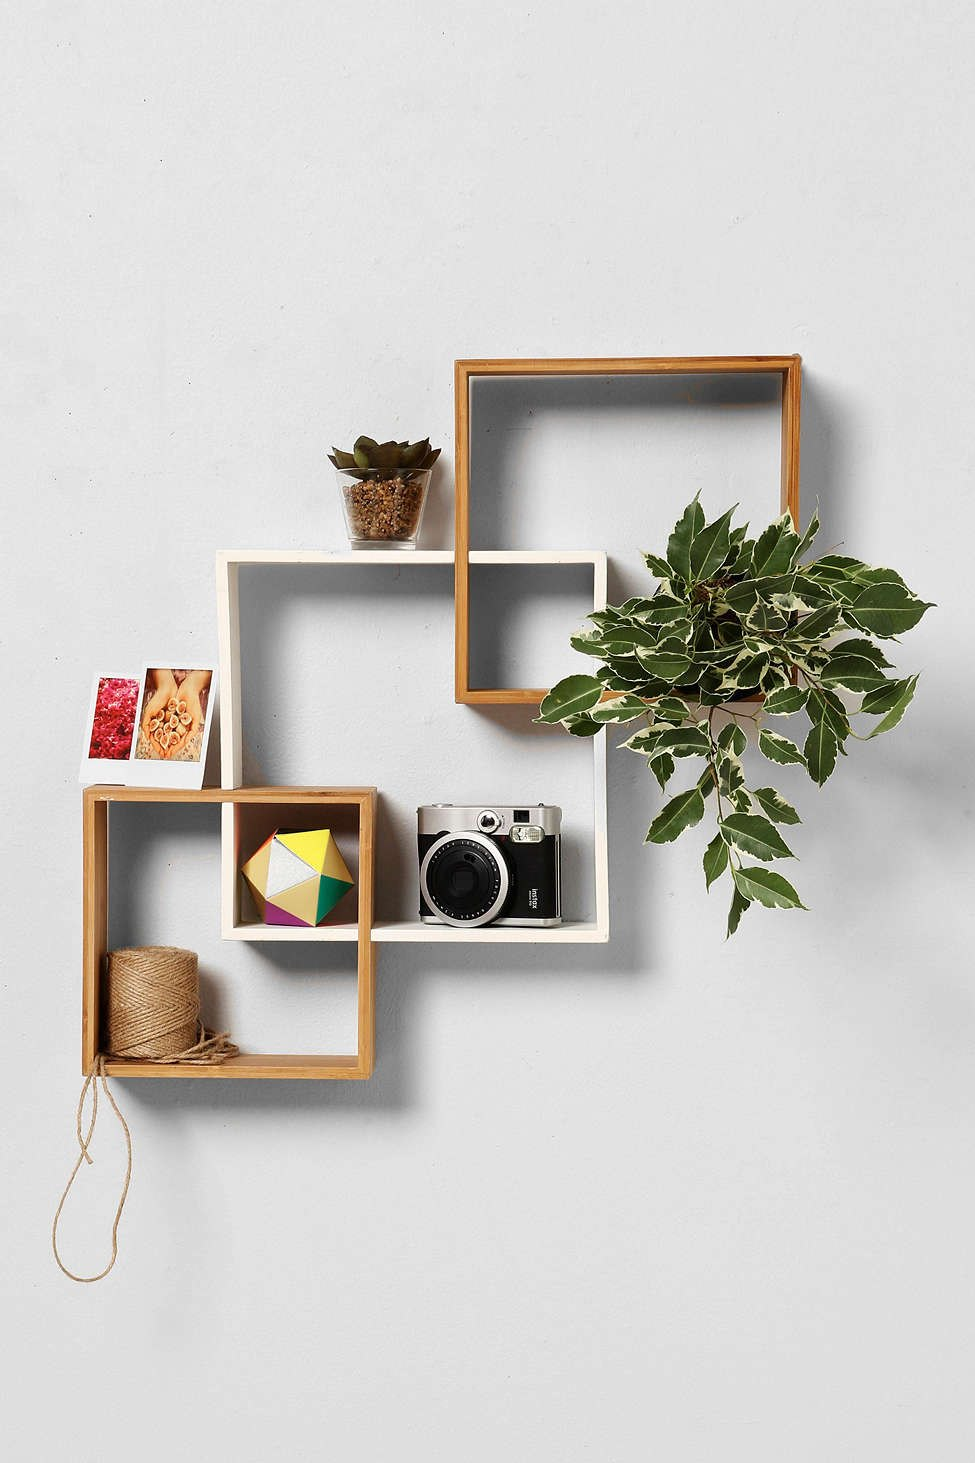 Bamboo wall shelving from Urban Outfitters